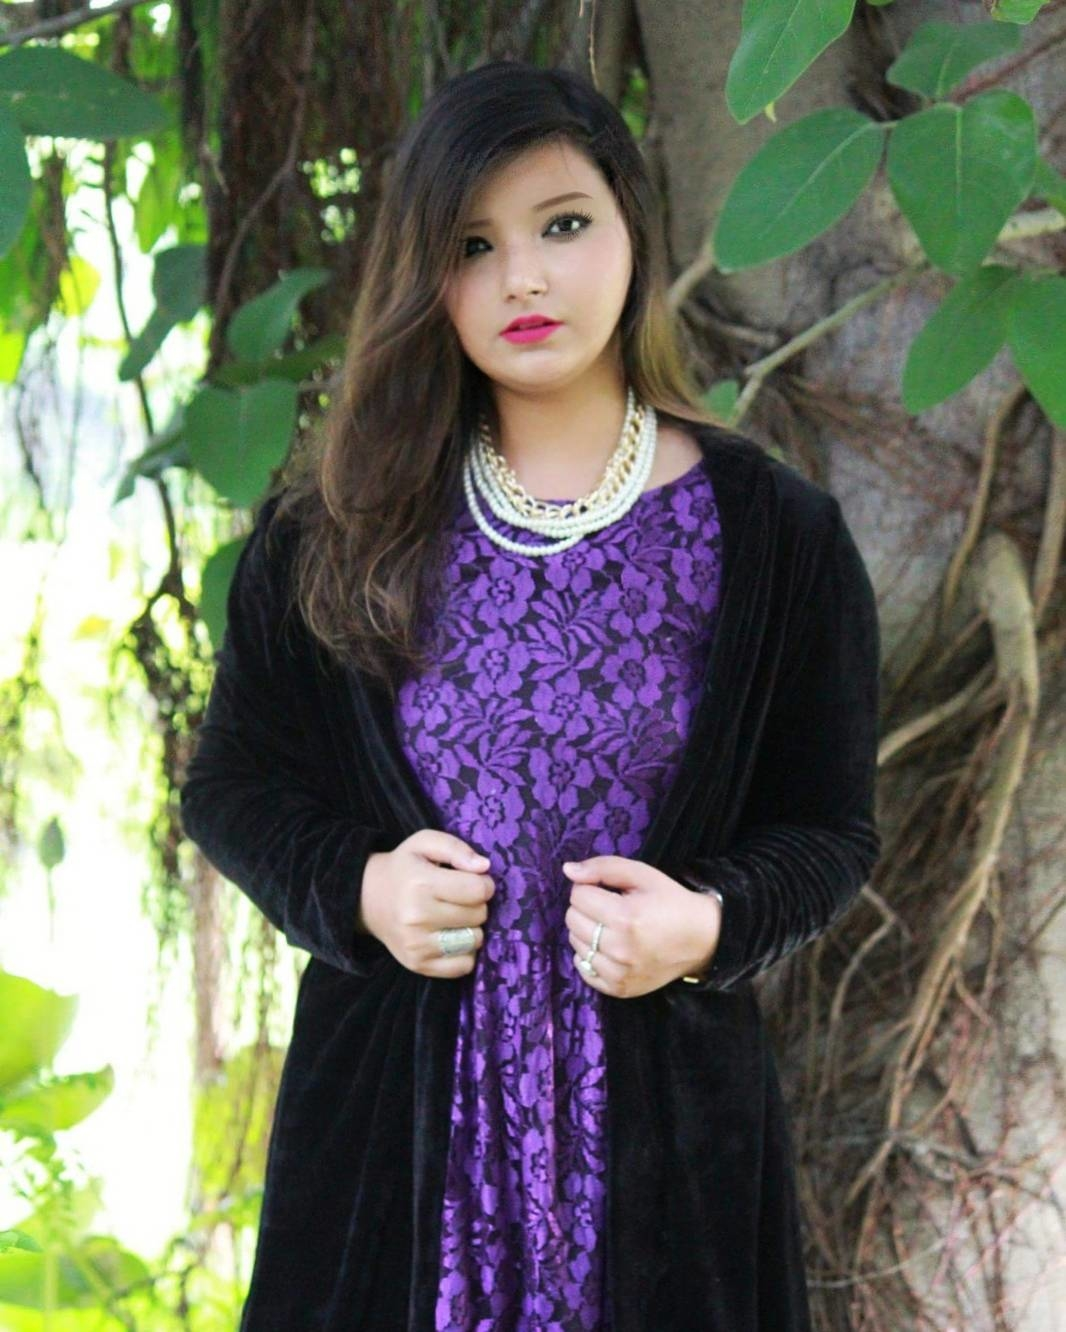   ❤ing layers    There is nothing I love more than a dress layered with shrug/cape. Wearing this beautiful velvet shrug by @lillie_by_ruthie  #layeringstyle #layering #thevelvetvanity  #fashionblogger  #beautyblogger  #lucknowbloggers #lucknowblogger  #soroposo  #galleri5 #instablogger #lucknow_igers #priyamaurya #facebookblogger #ls #roposoblogger  #reviewblogger  #streetstyle #fashion #style #streetstyleblogger #lifestyleblogger  #indianblogger #roposotalks